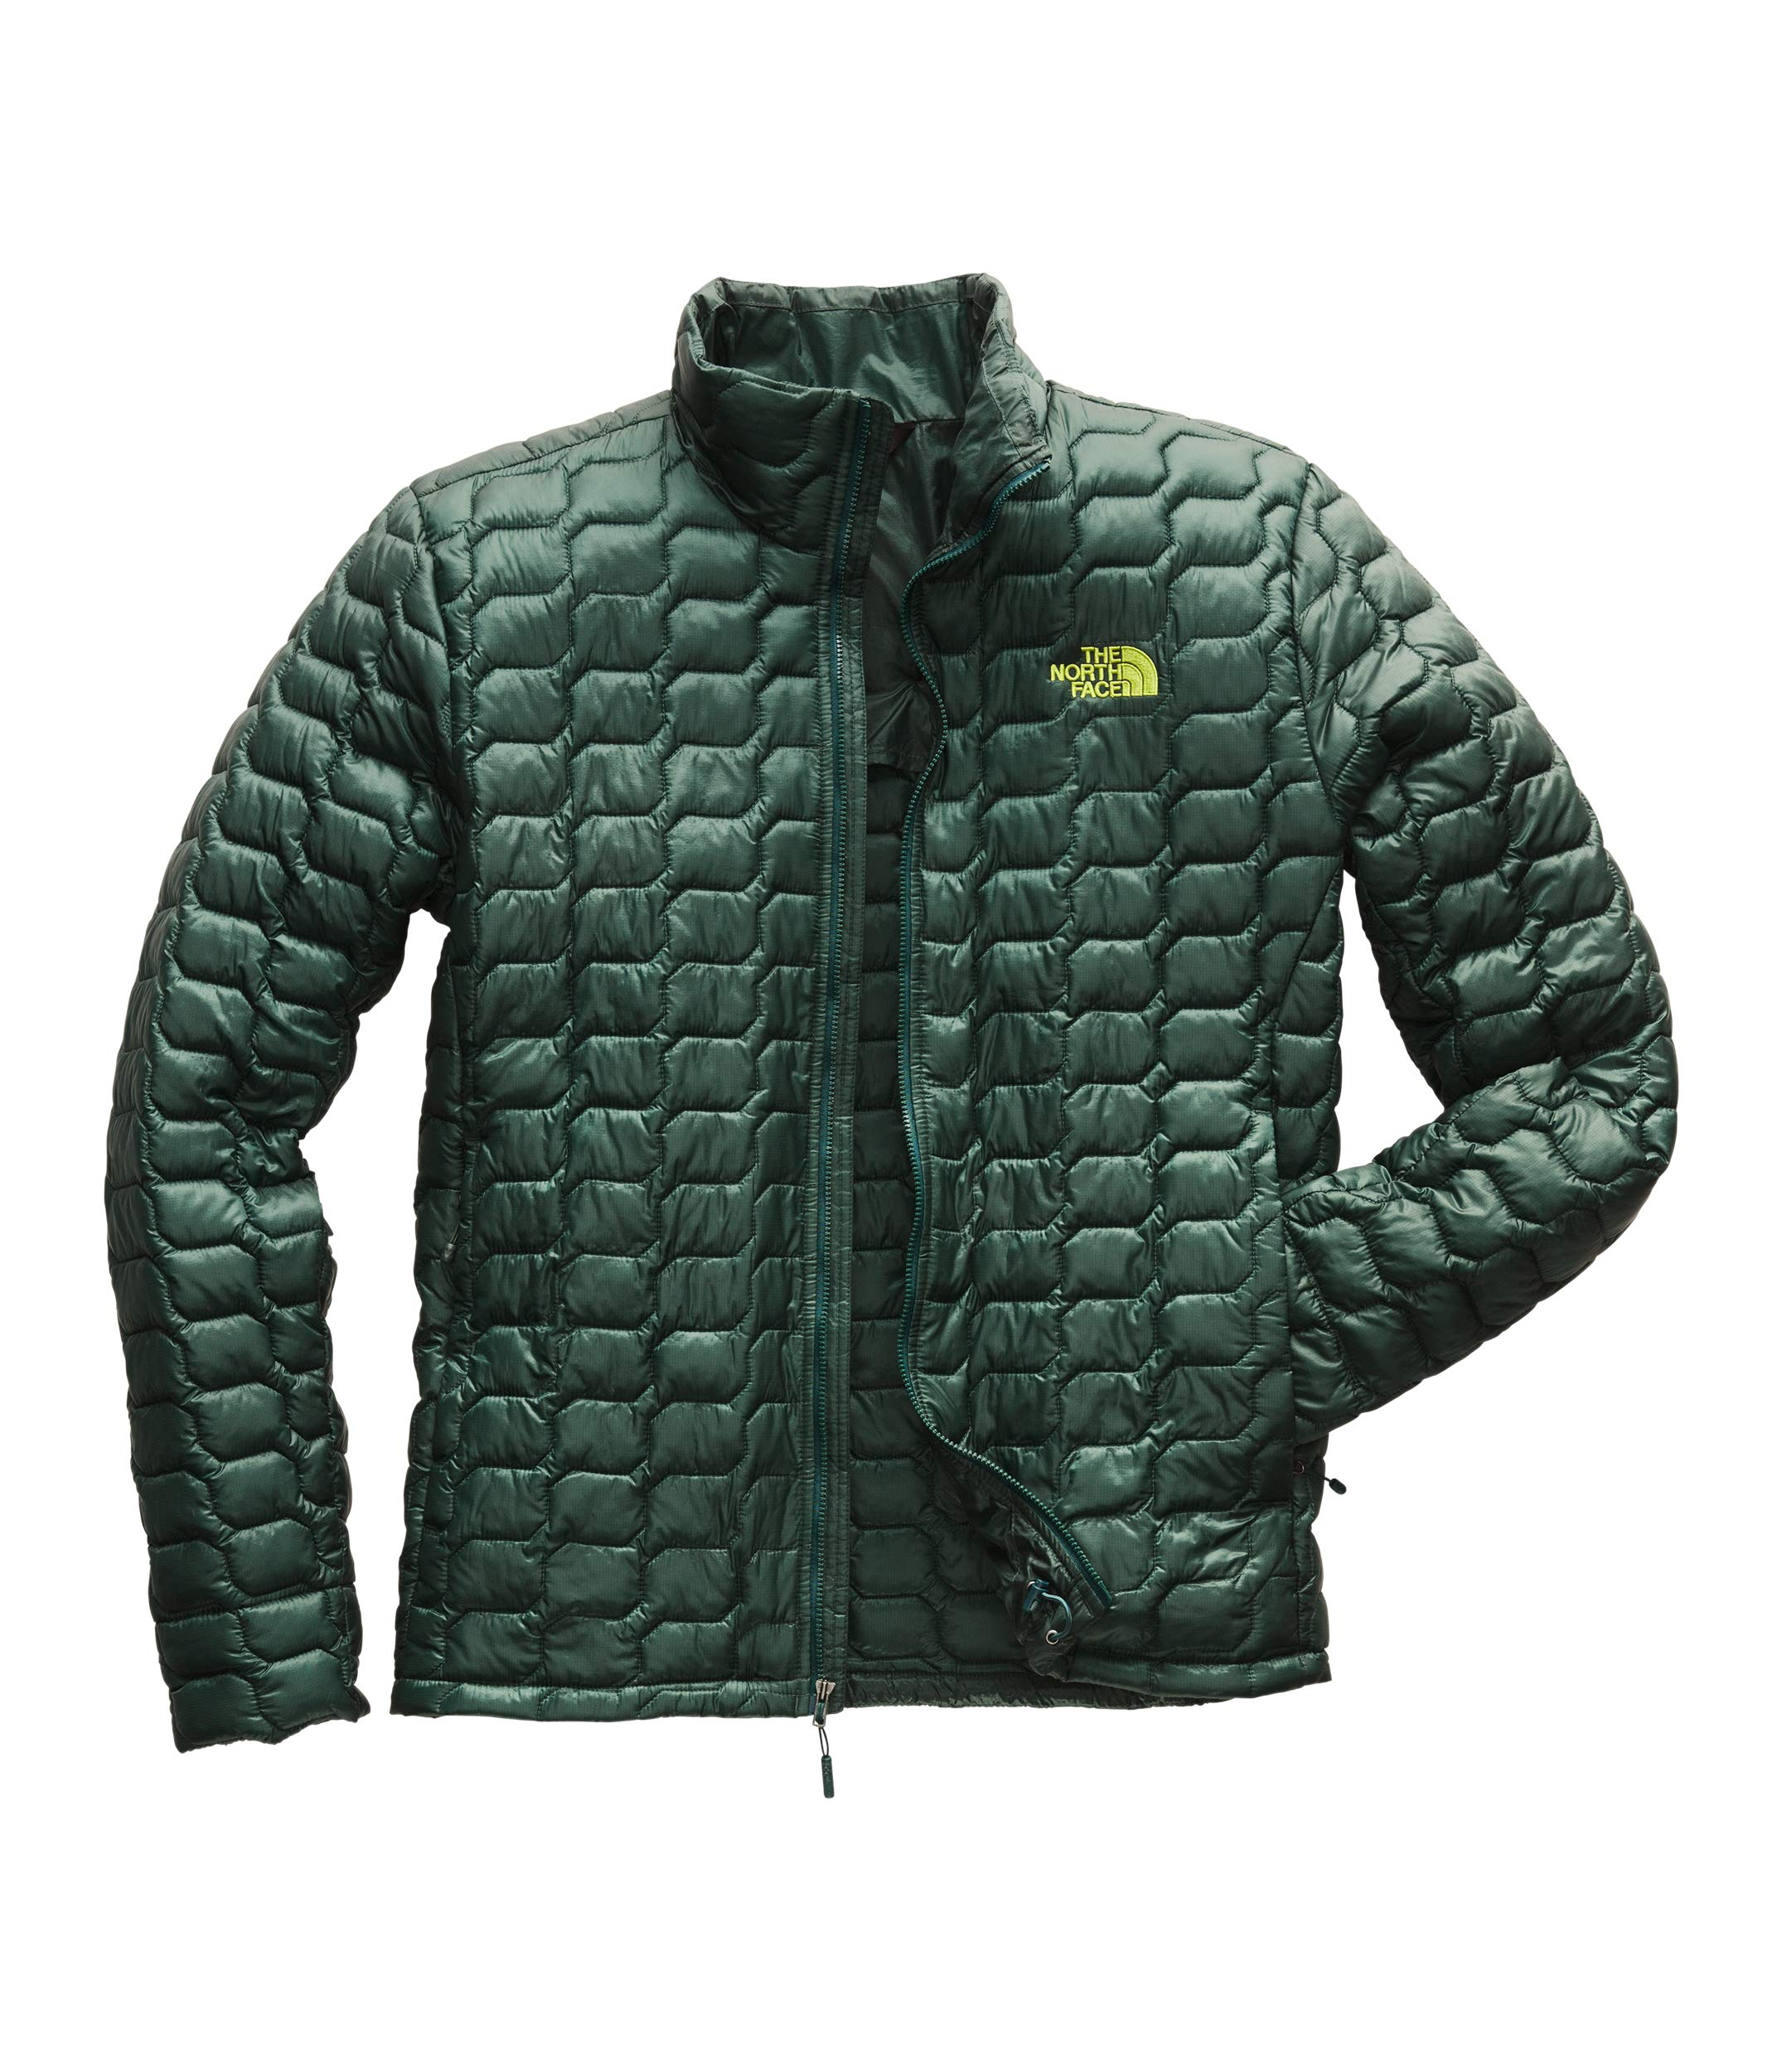 The North Face Men's Thermoball Jacket Botanical Garden Green Small